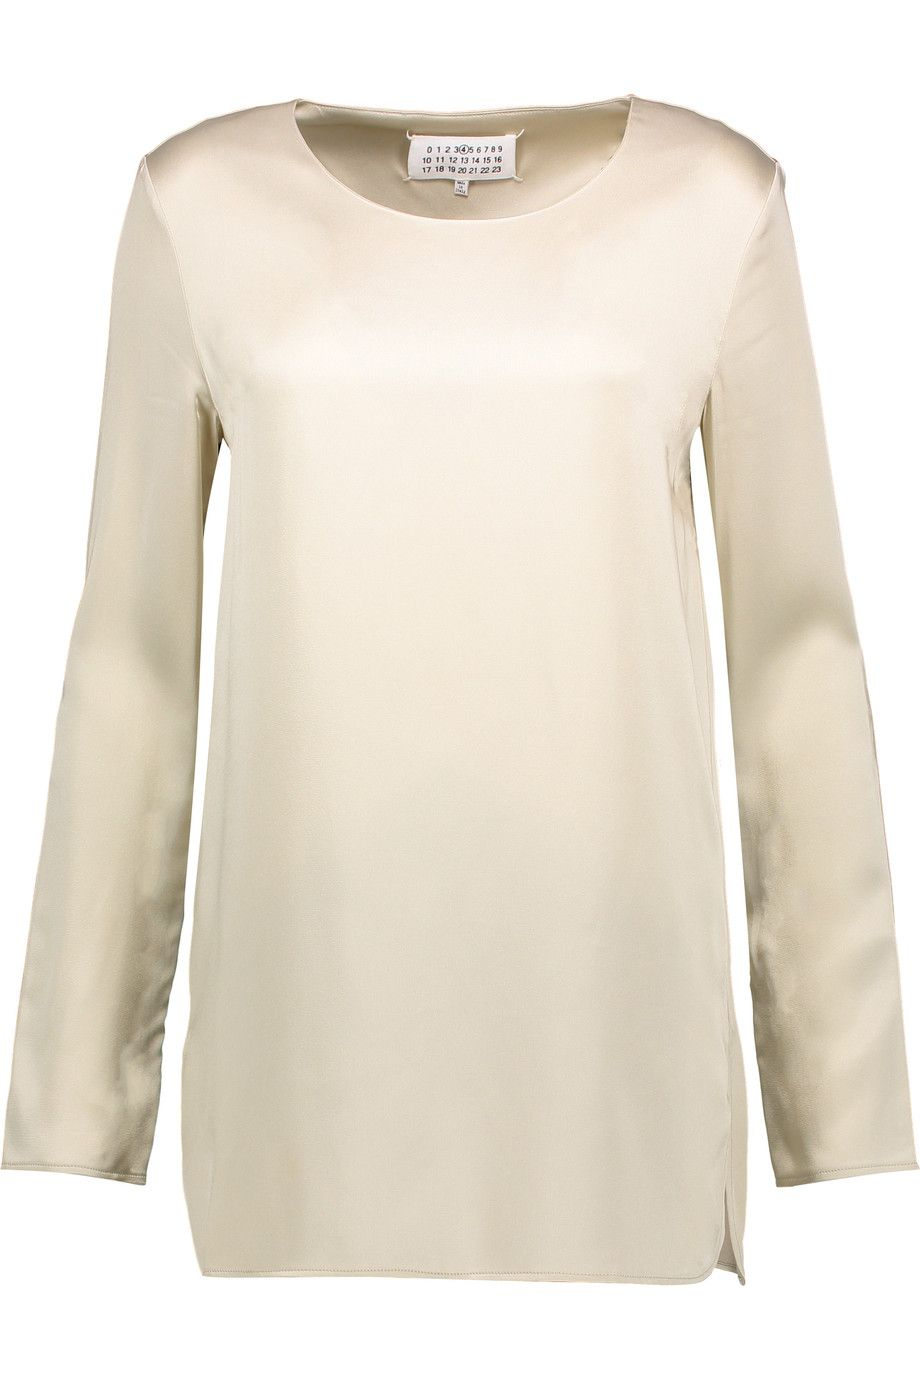 Outlet Amazon Mm6 By Maison Margiela Woman Wrap-effect Twill Top White Size S Maison Martin Margiela Free Shipping Reliable Outlet Footlocker Finishline Popular Online fioUNYVV